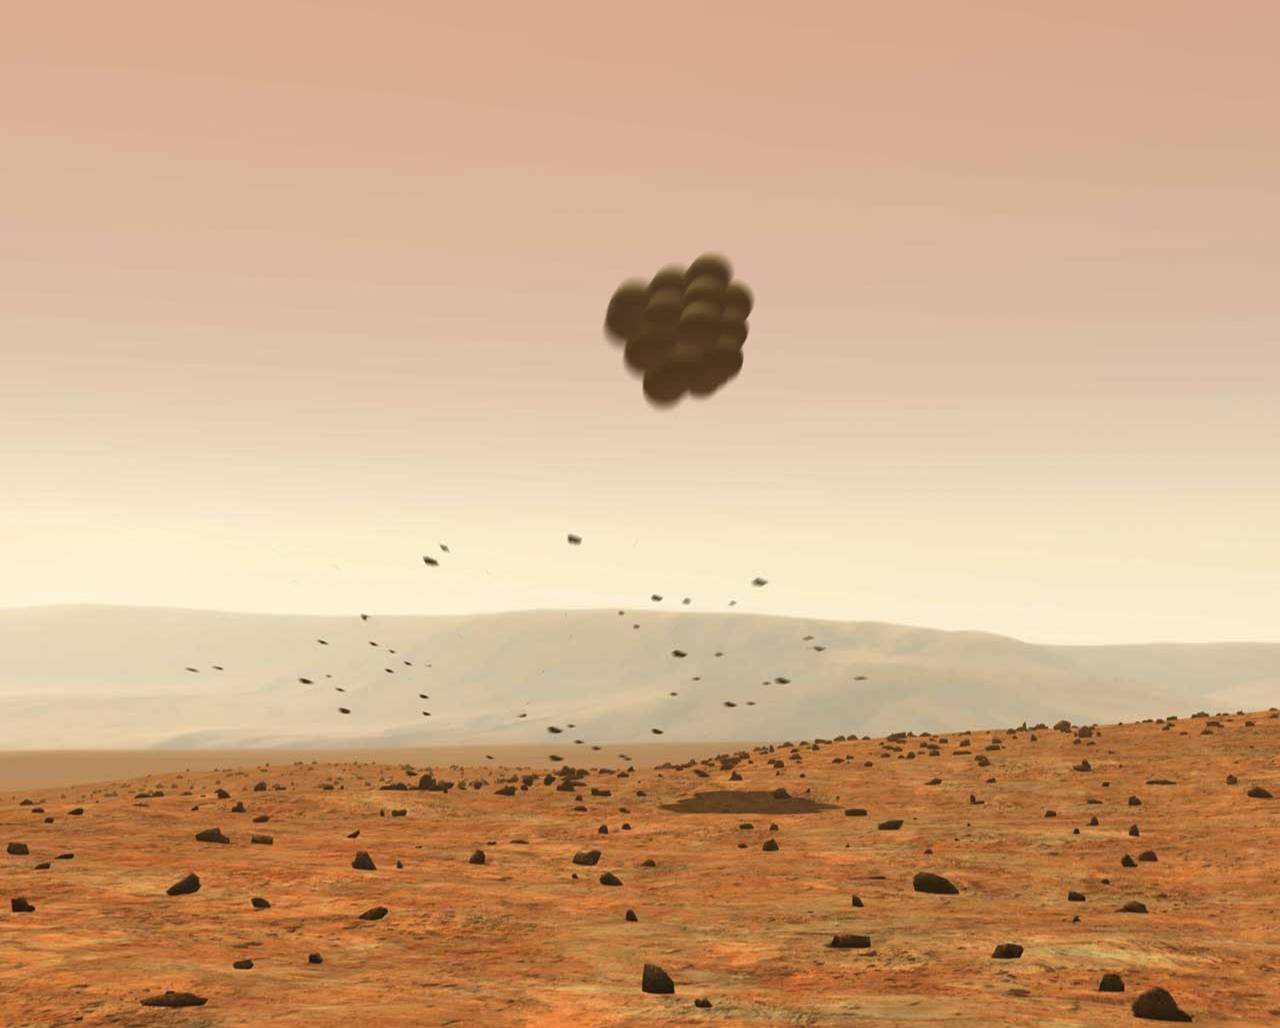 Protected by large airbags, the lander falls away from the parachute, landing safely on Mars.